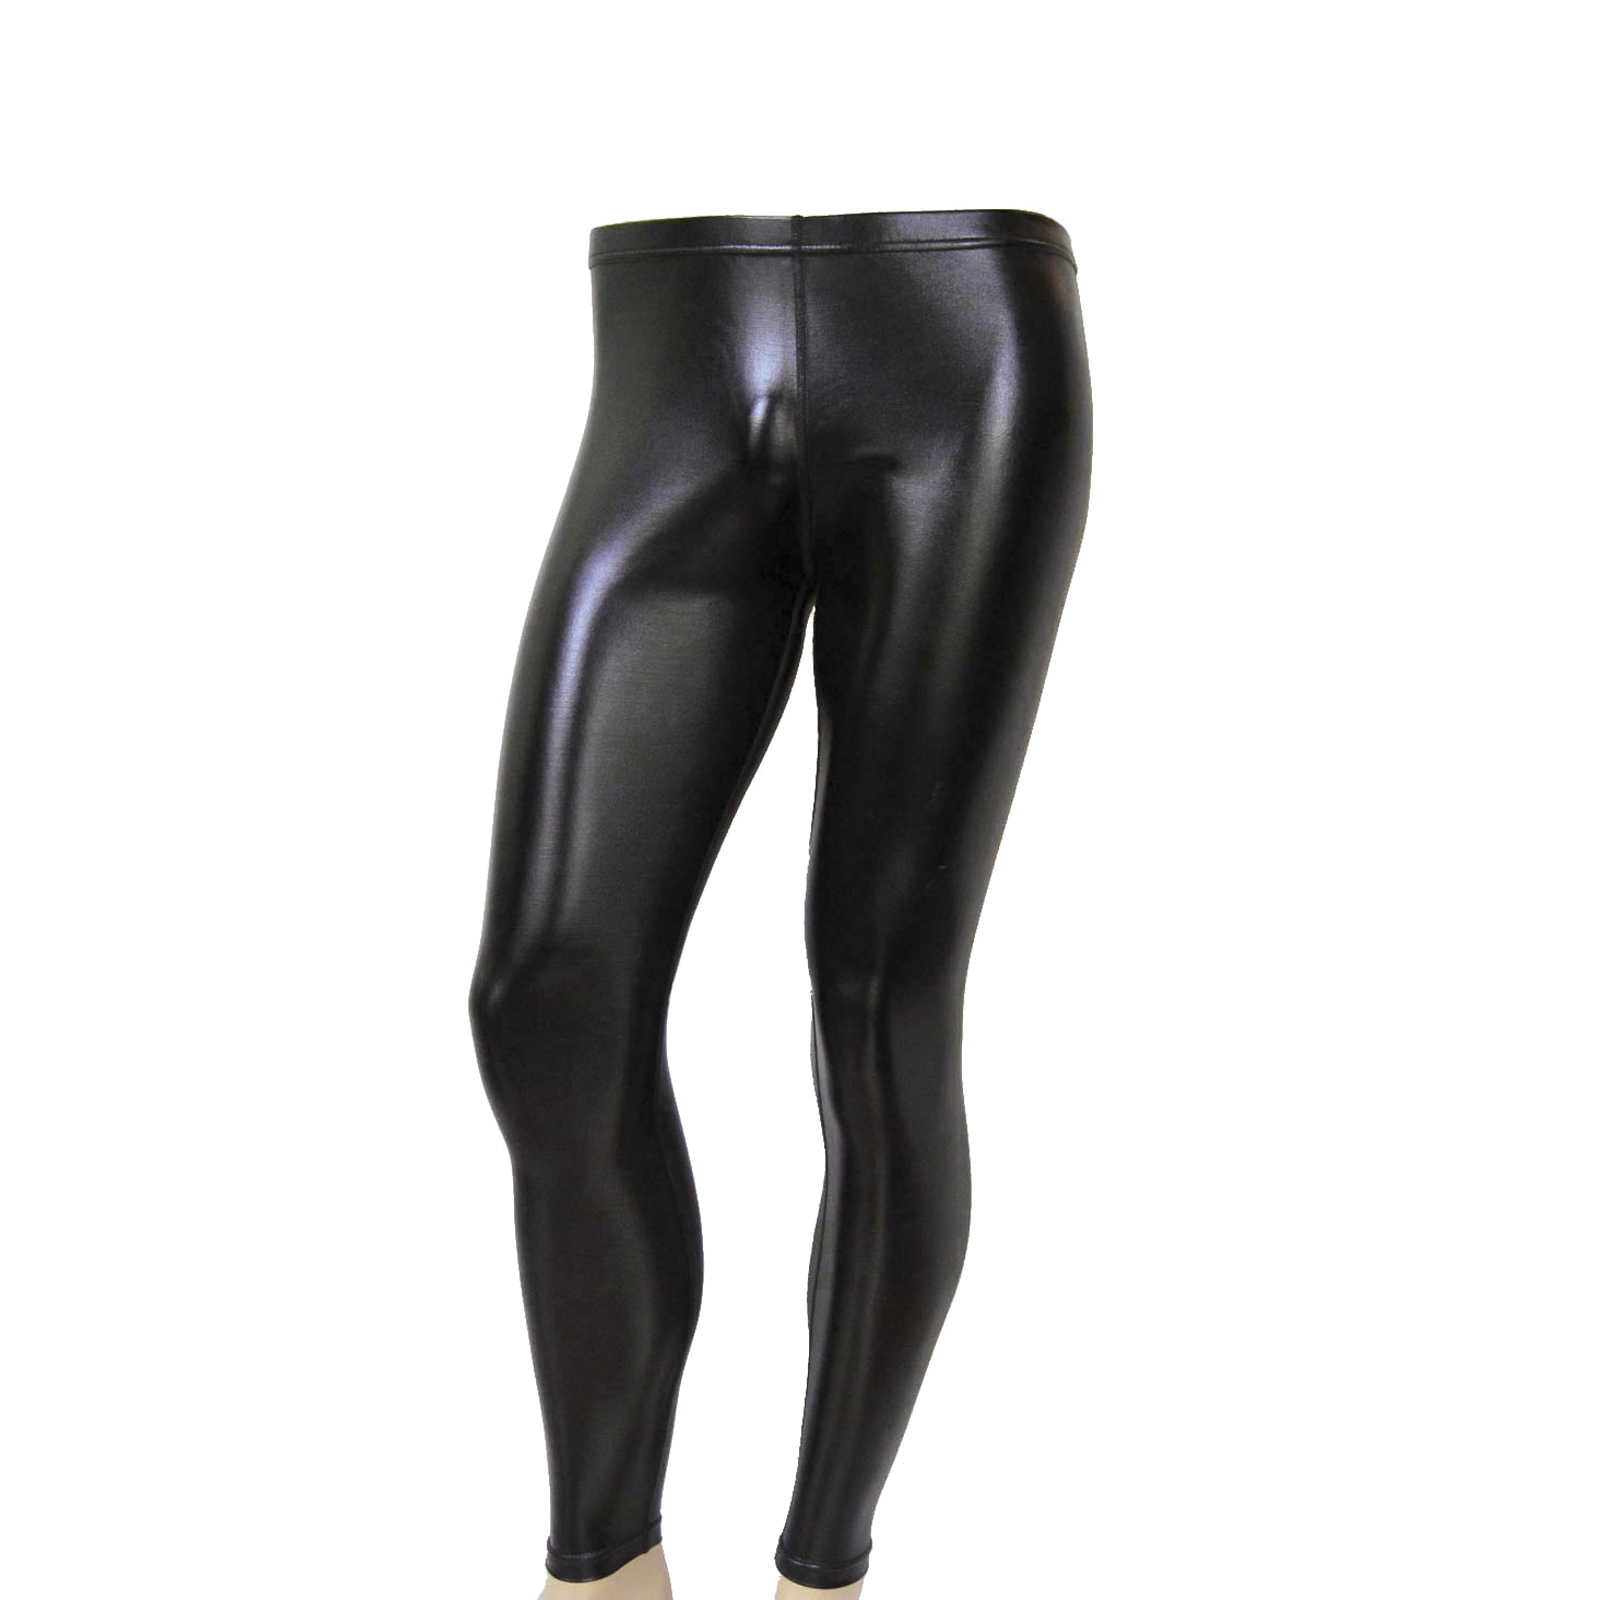 80s-Heavy-Metal-GLAM-Rock-Spandex-Stretch-Pants-BLACK